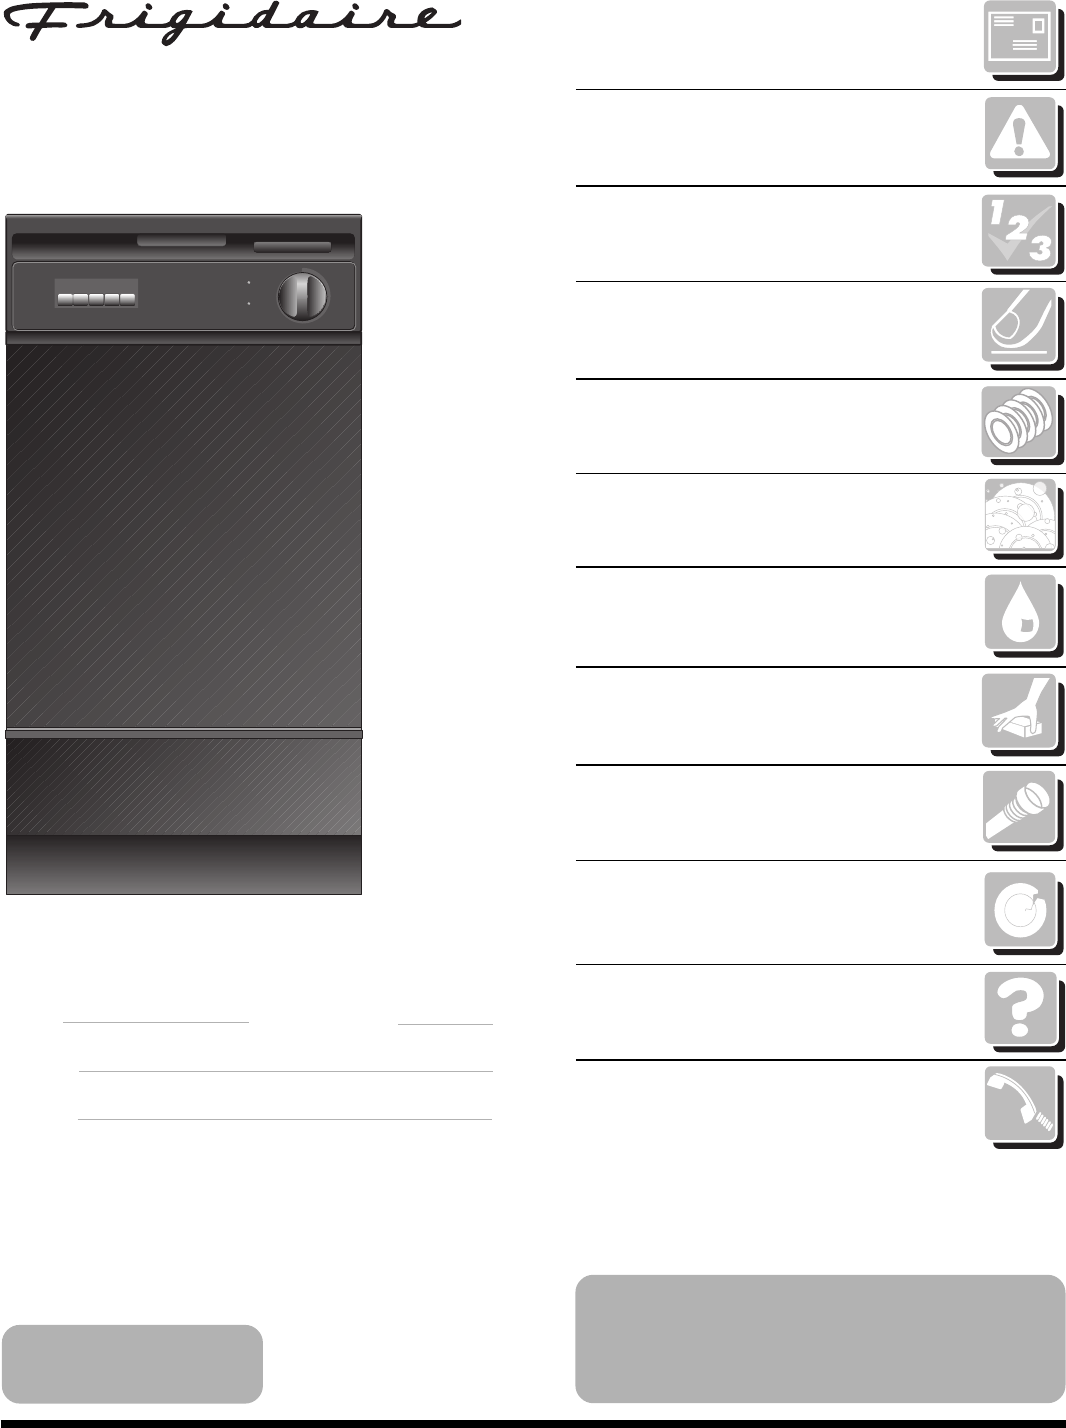 frigidaire dishwasher 18 inch built in and portable user guide rh kitchen manualsonline com Frigidaire Washer Dryer Combo Frigidaire Glass Top Stove